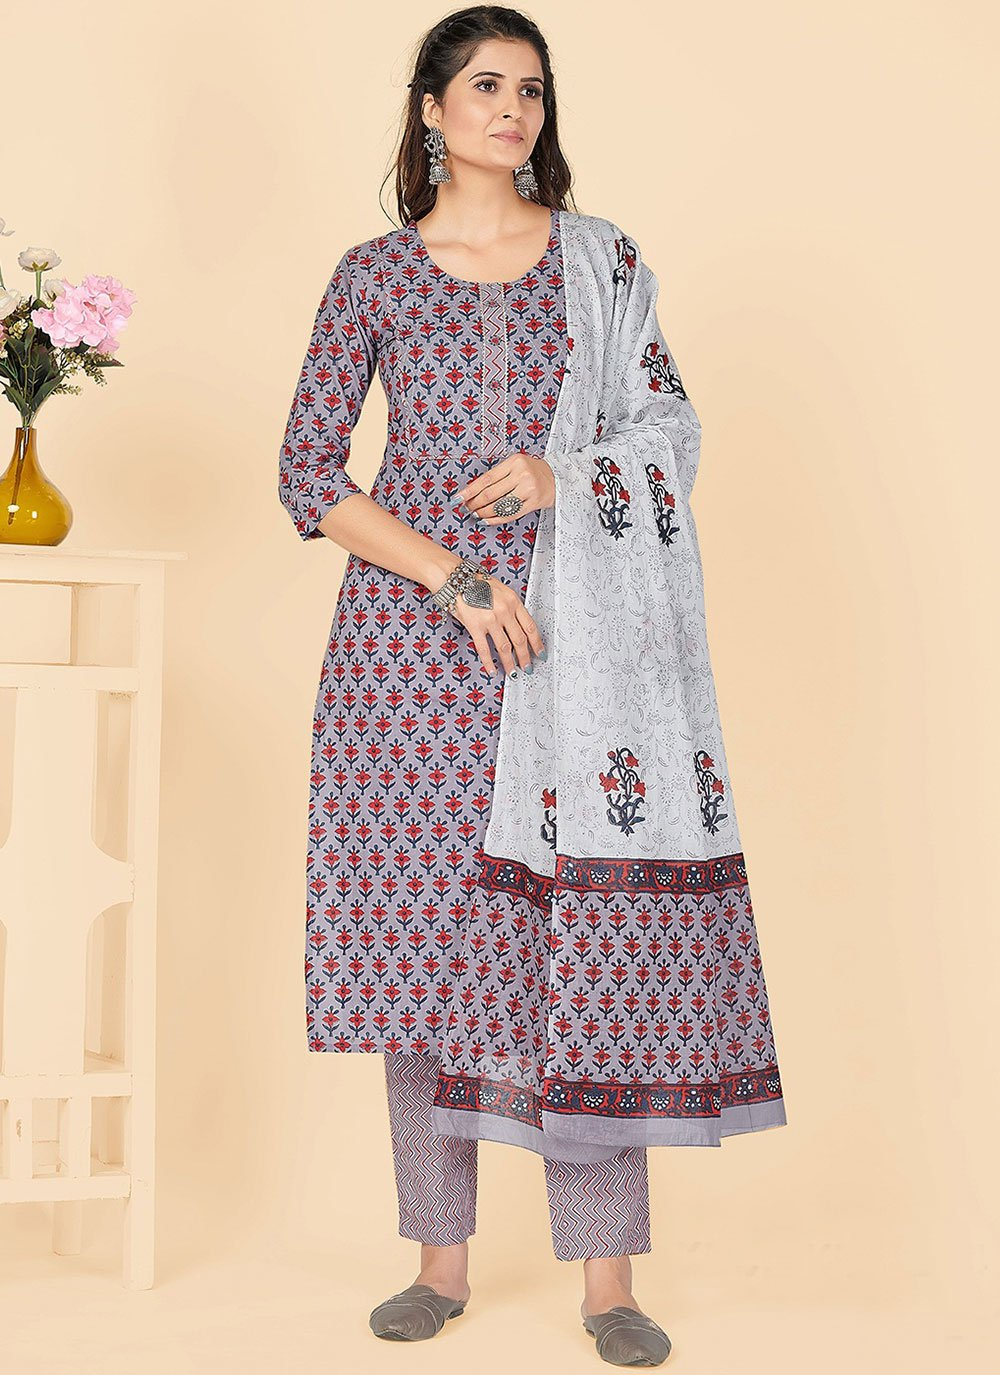 Embroidered Party Bollywood Salwar Kameez